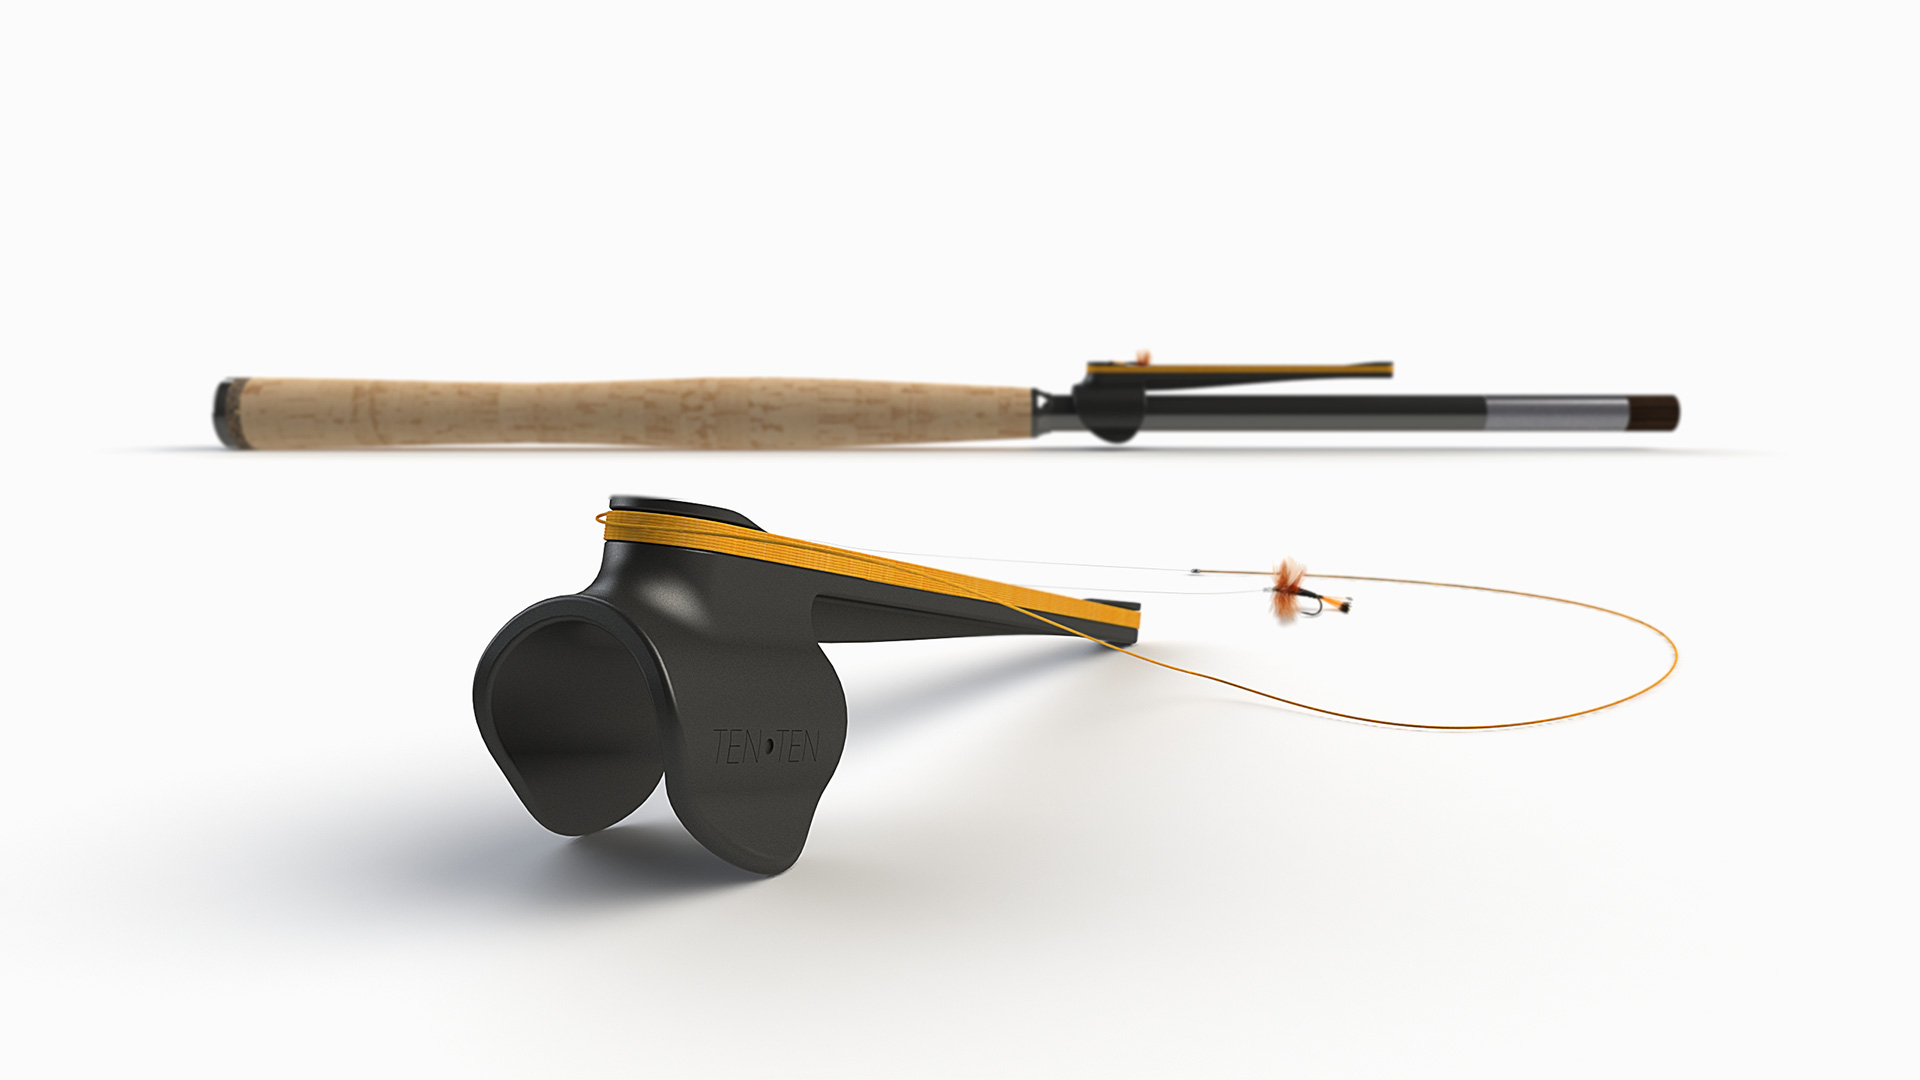 ten ten tenkara spool product design